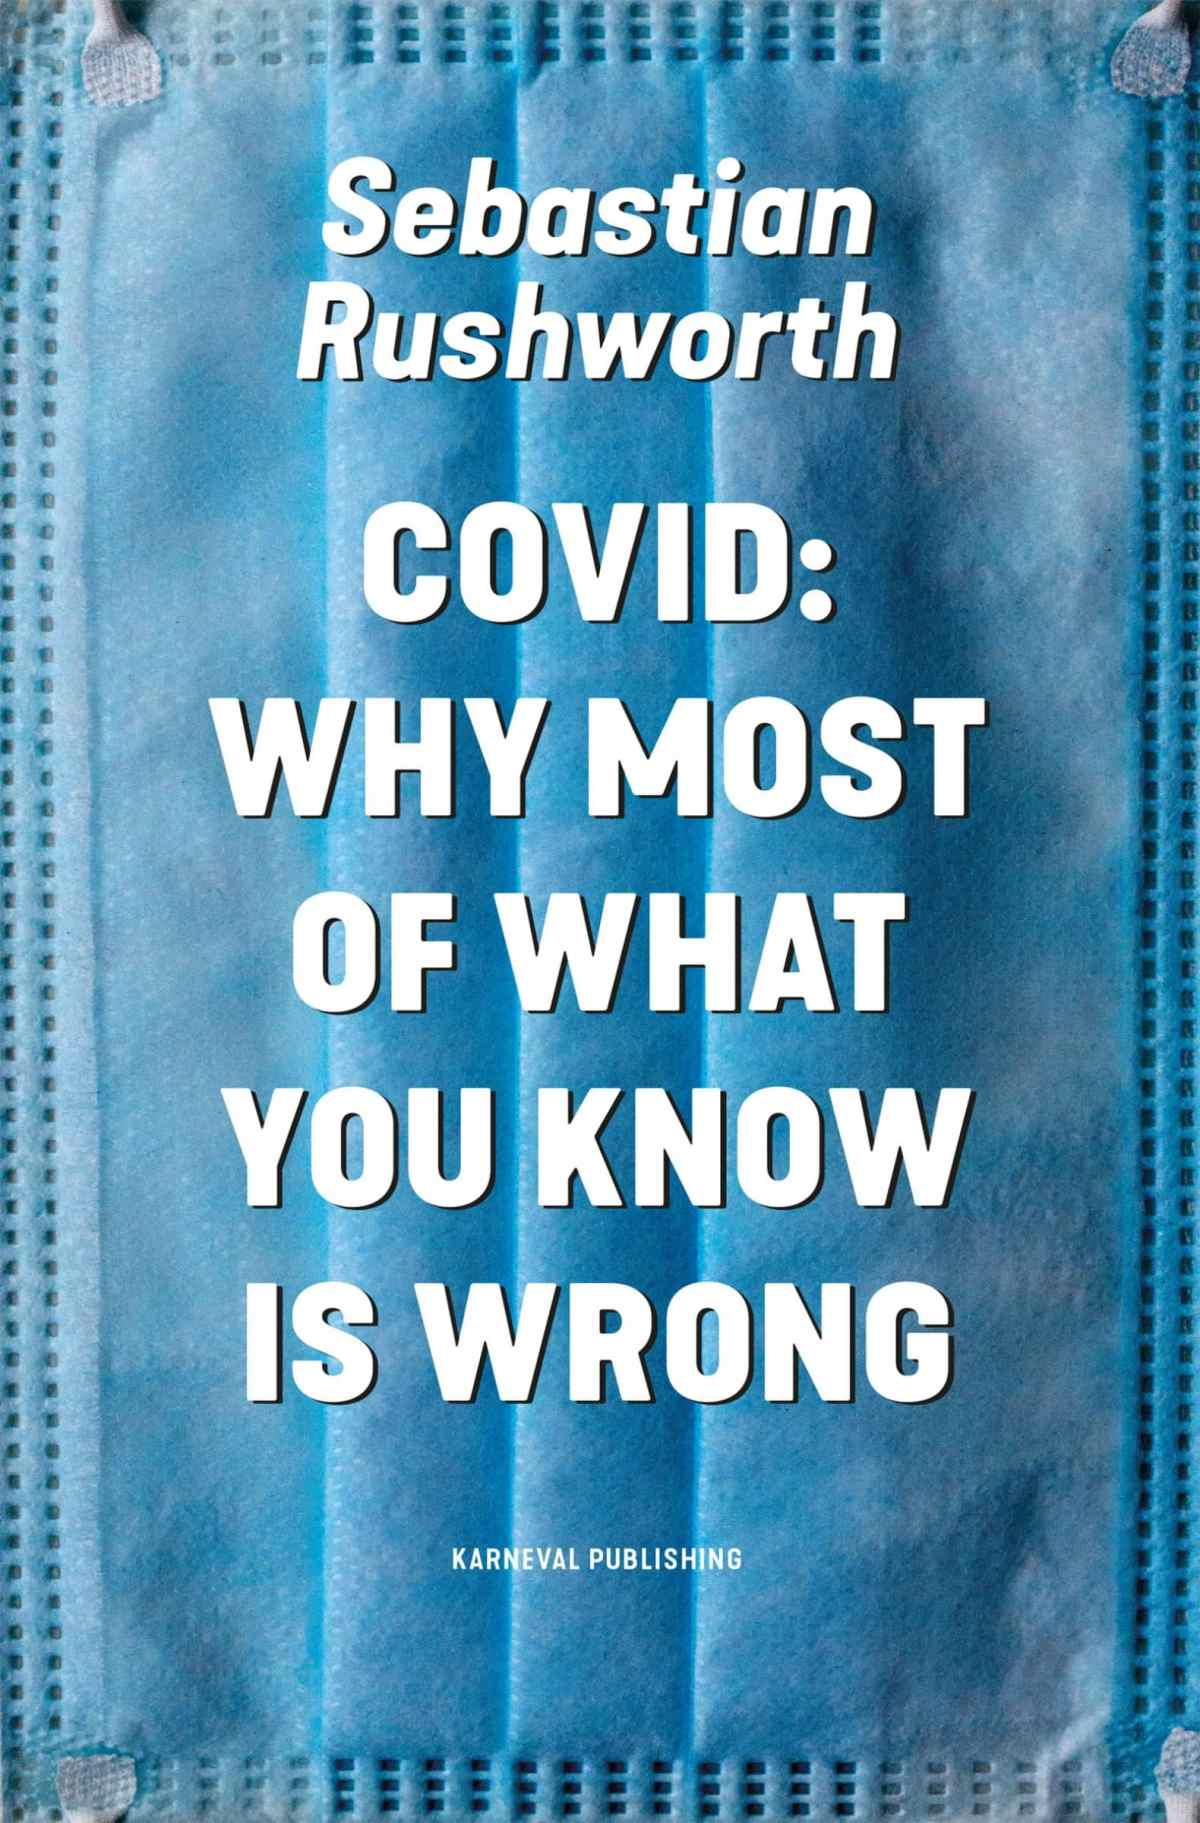 Covid Why most of what you know is wrong Sebastian Rushworth